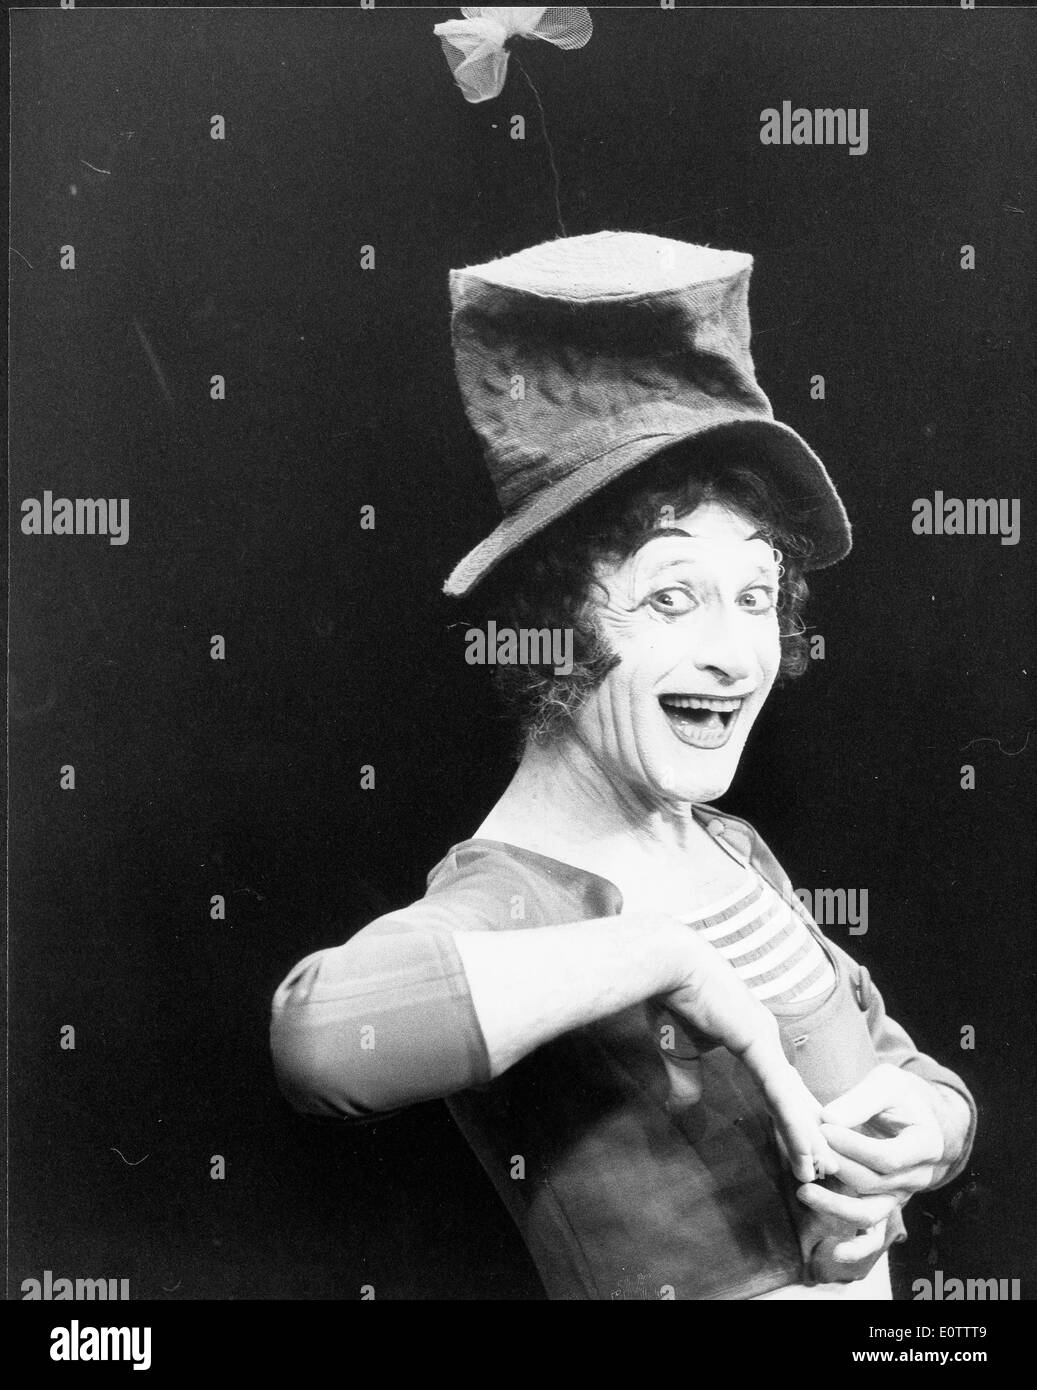 French mime artist and actor Marcel Marceau - Stock Image